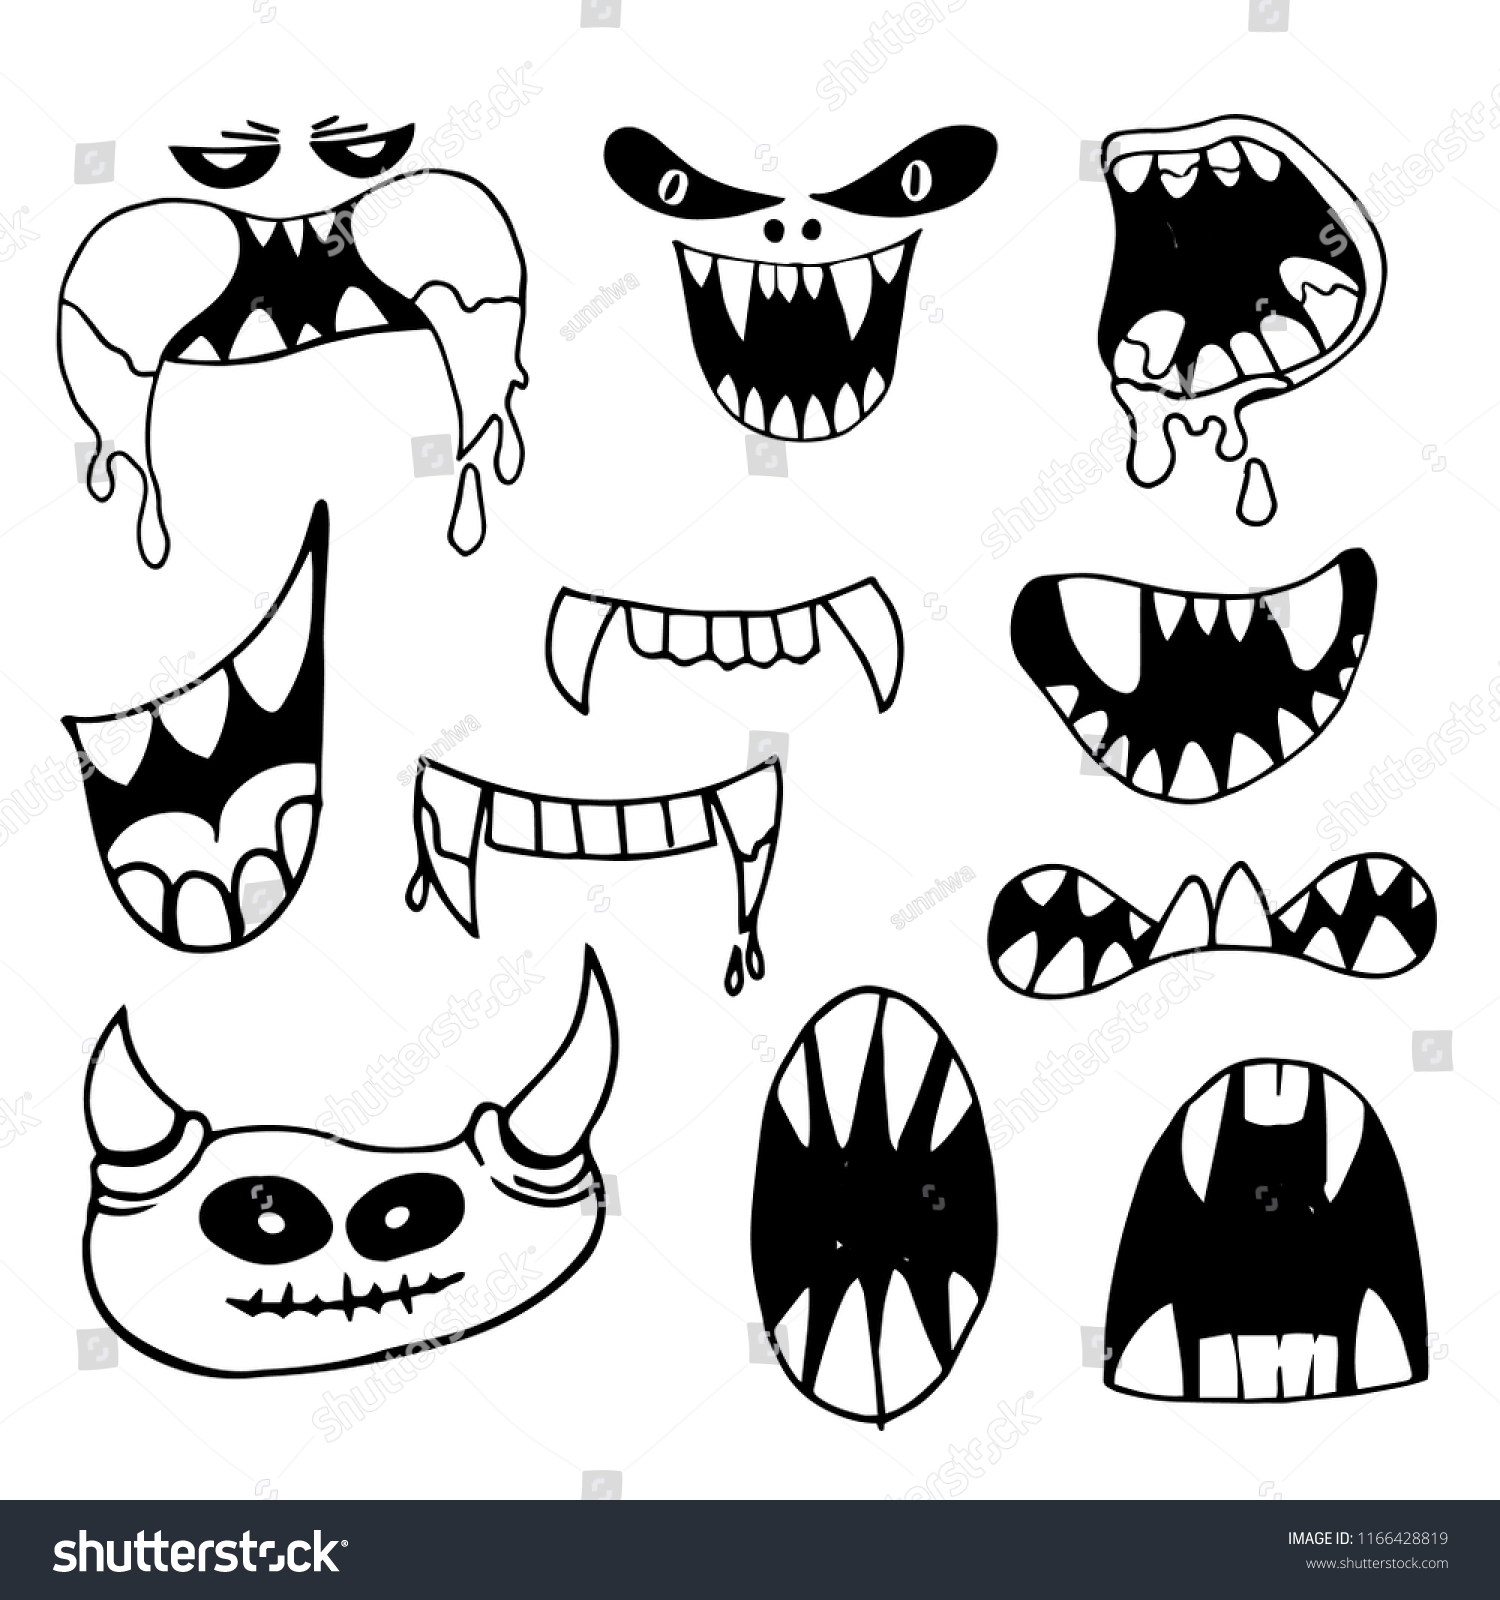 Hand Drawing Set Black White Scary Stock Vector Royalty Free 1166428819